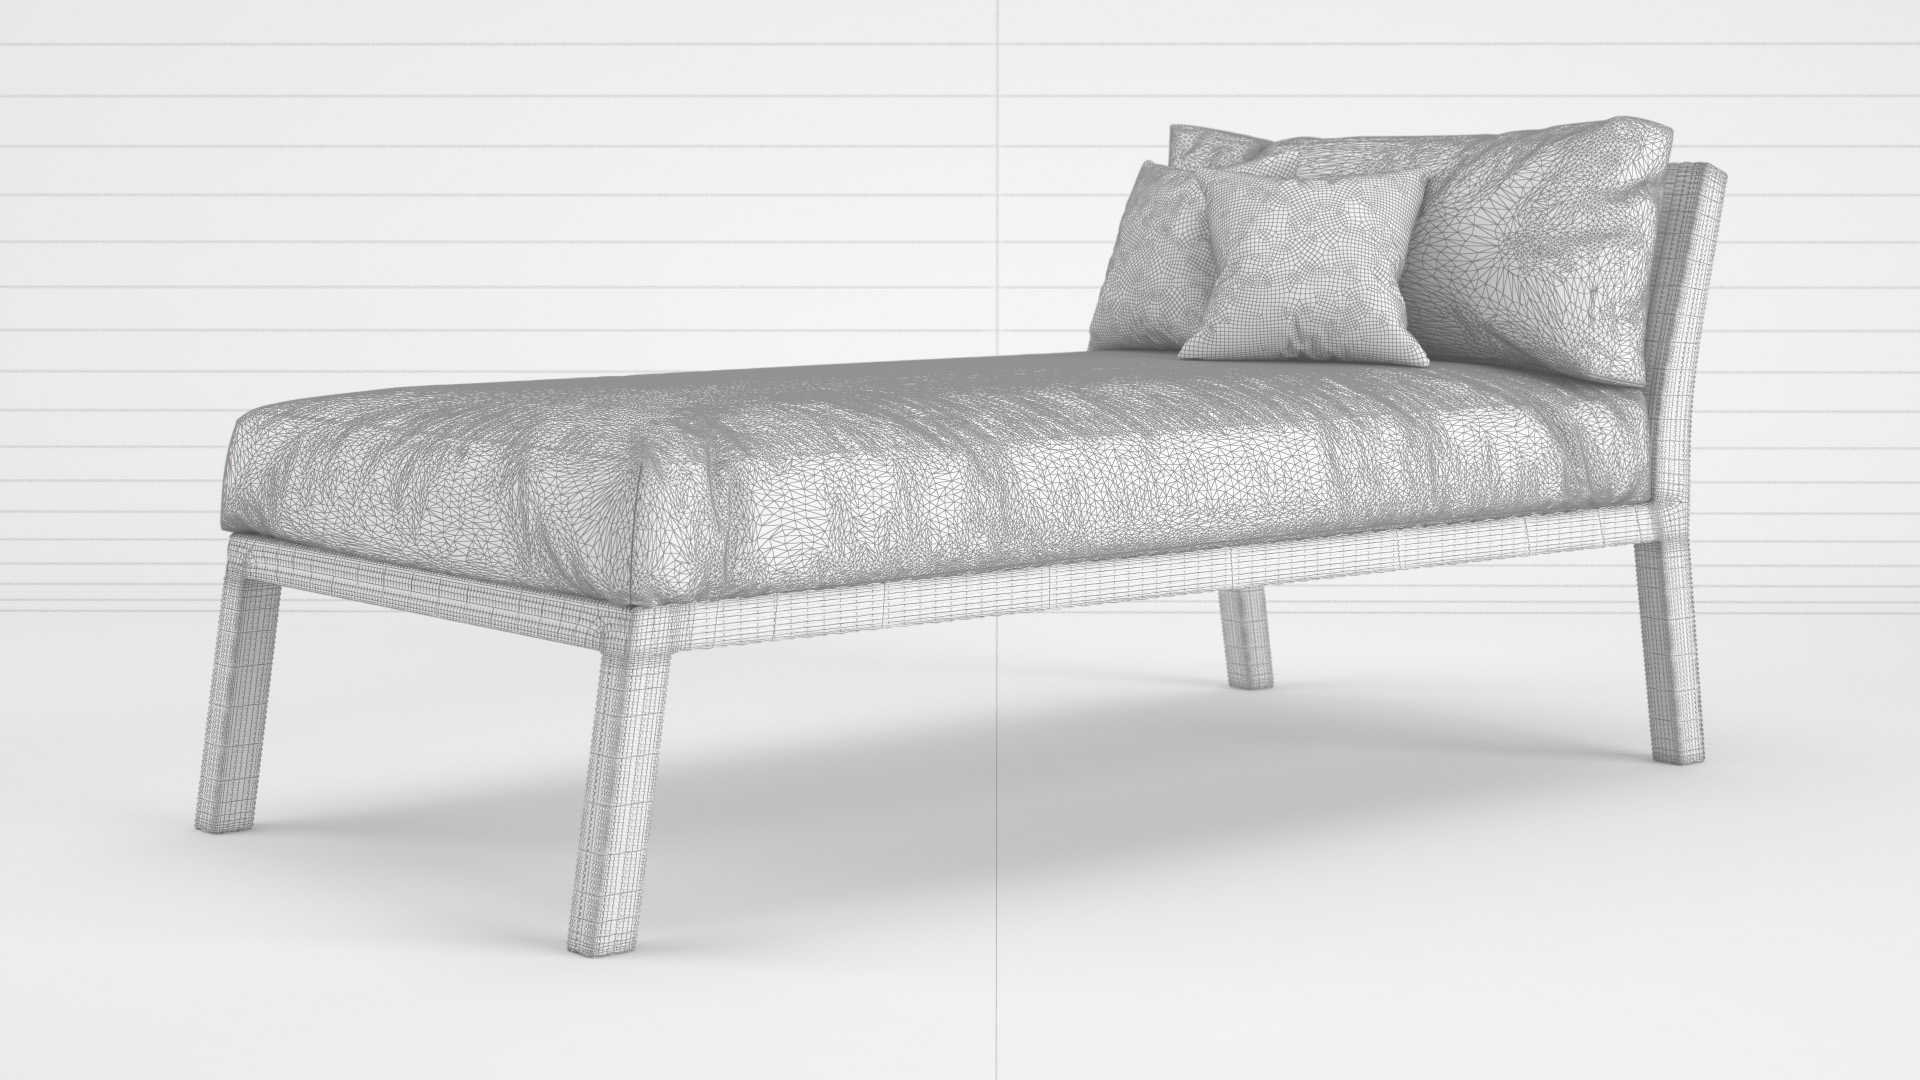 Versus_Lounger_WhiteSet_01_wire_0000